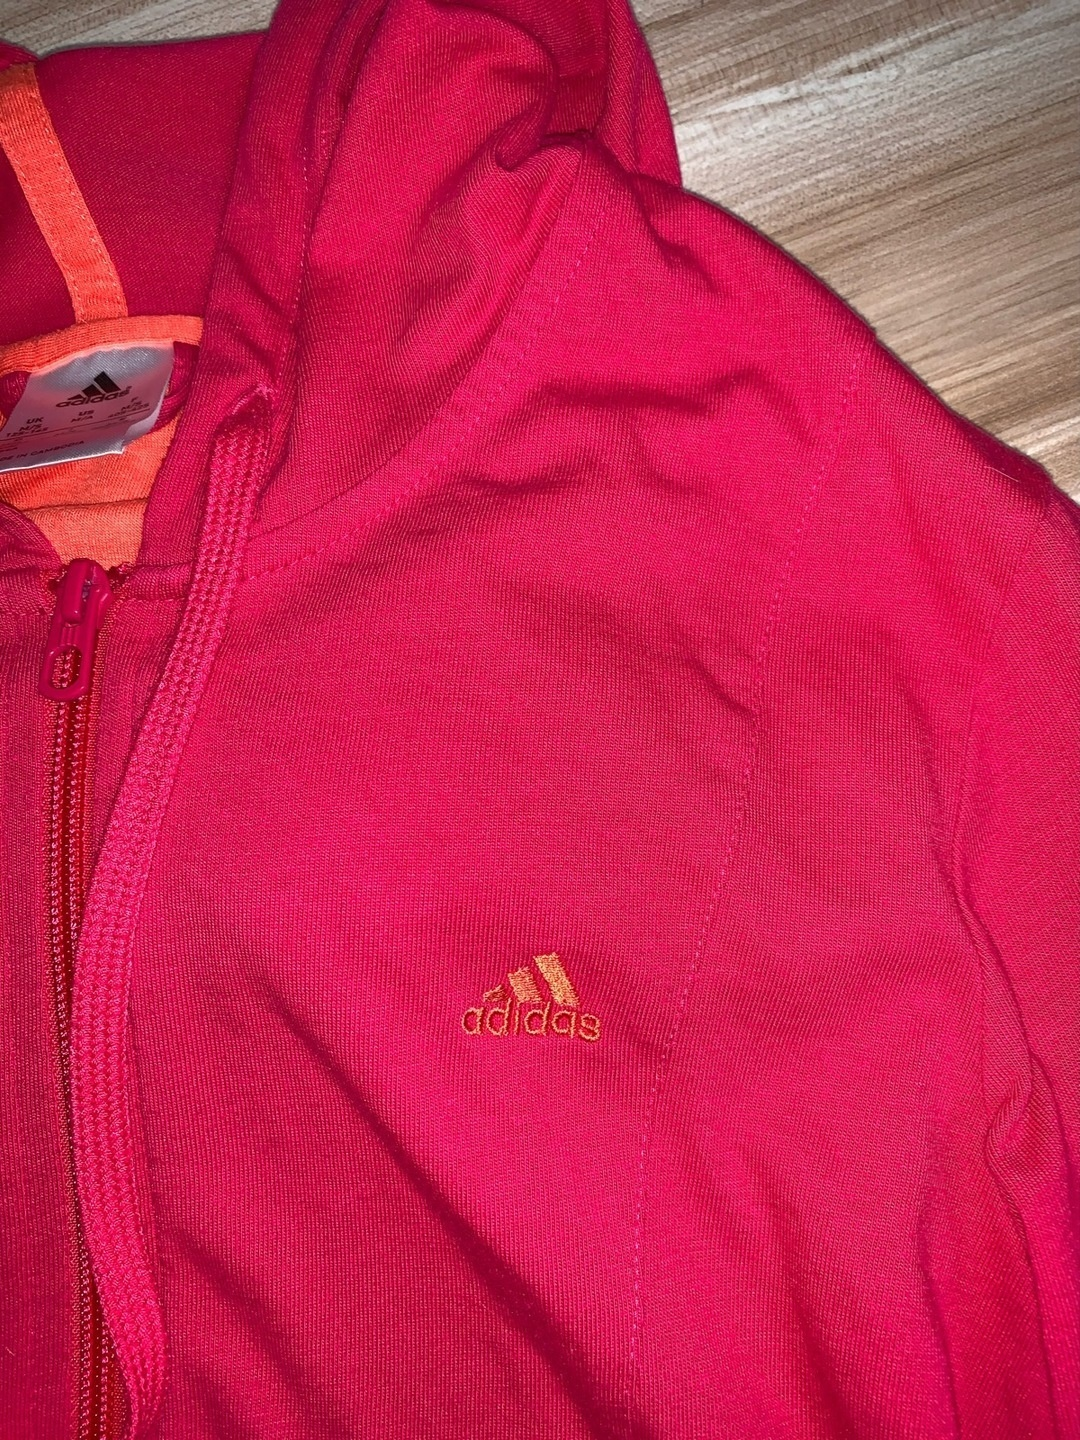 Women's coats & jackets - ADIDAS photo 3